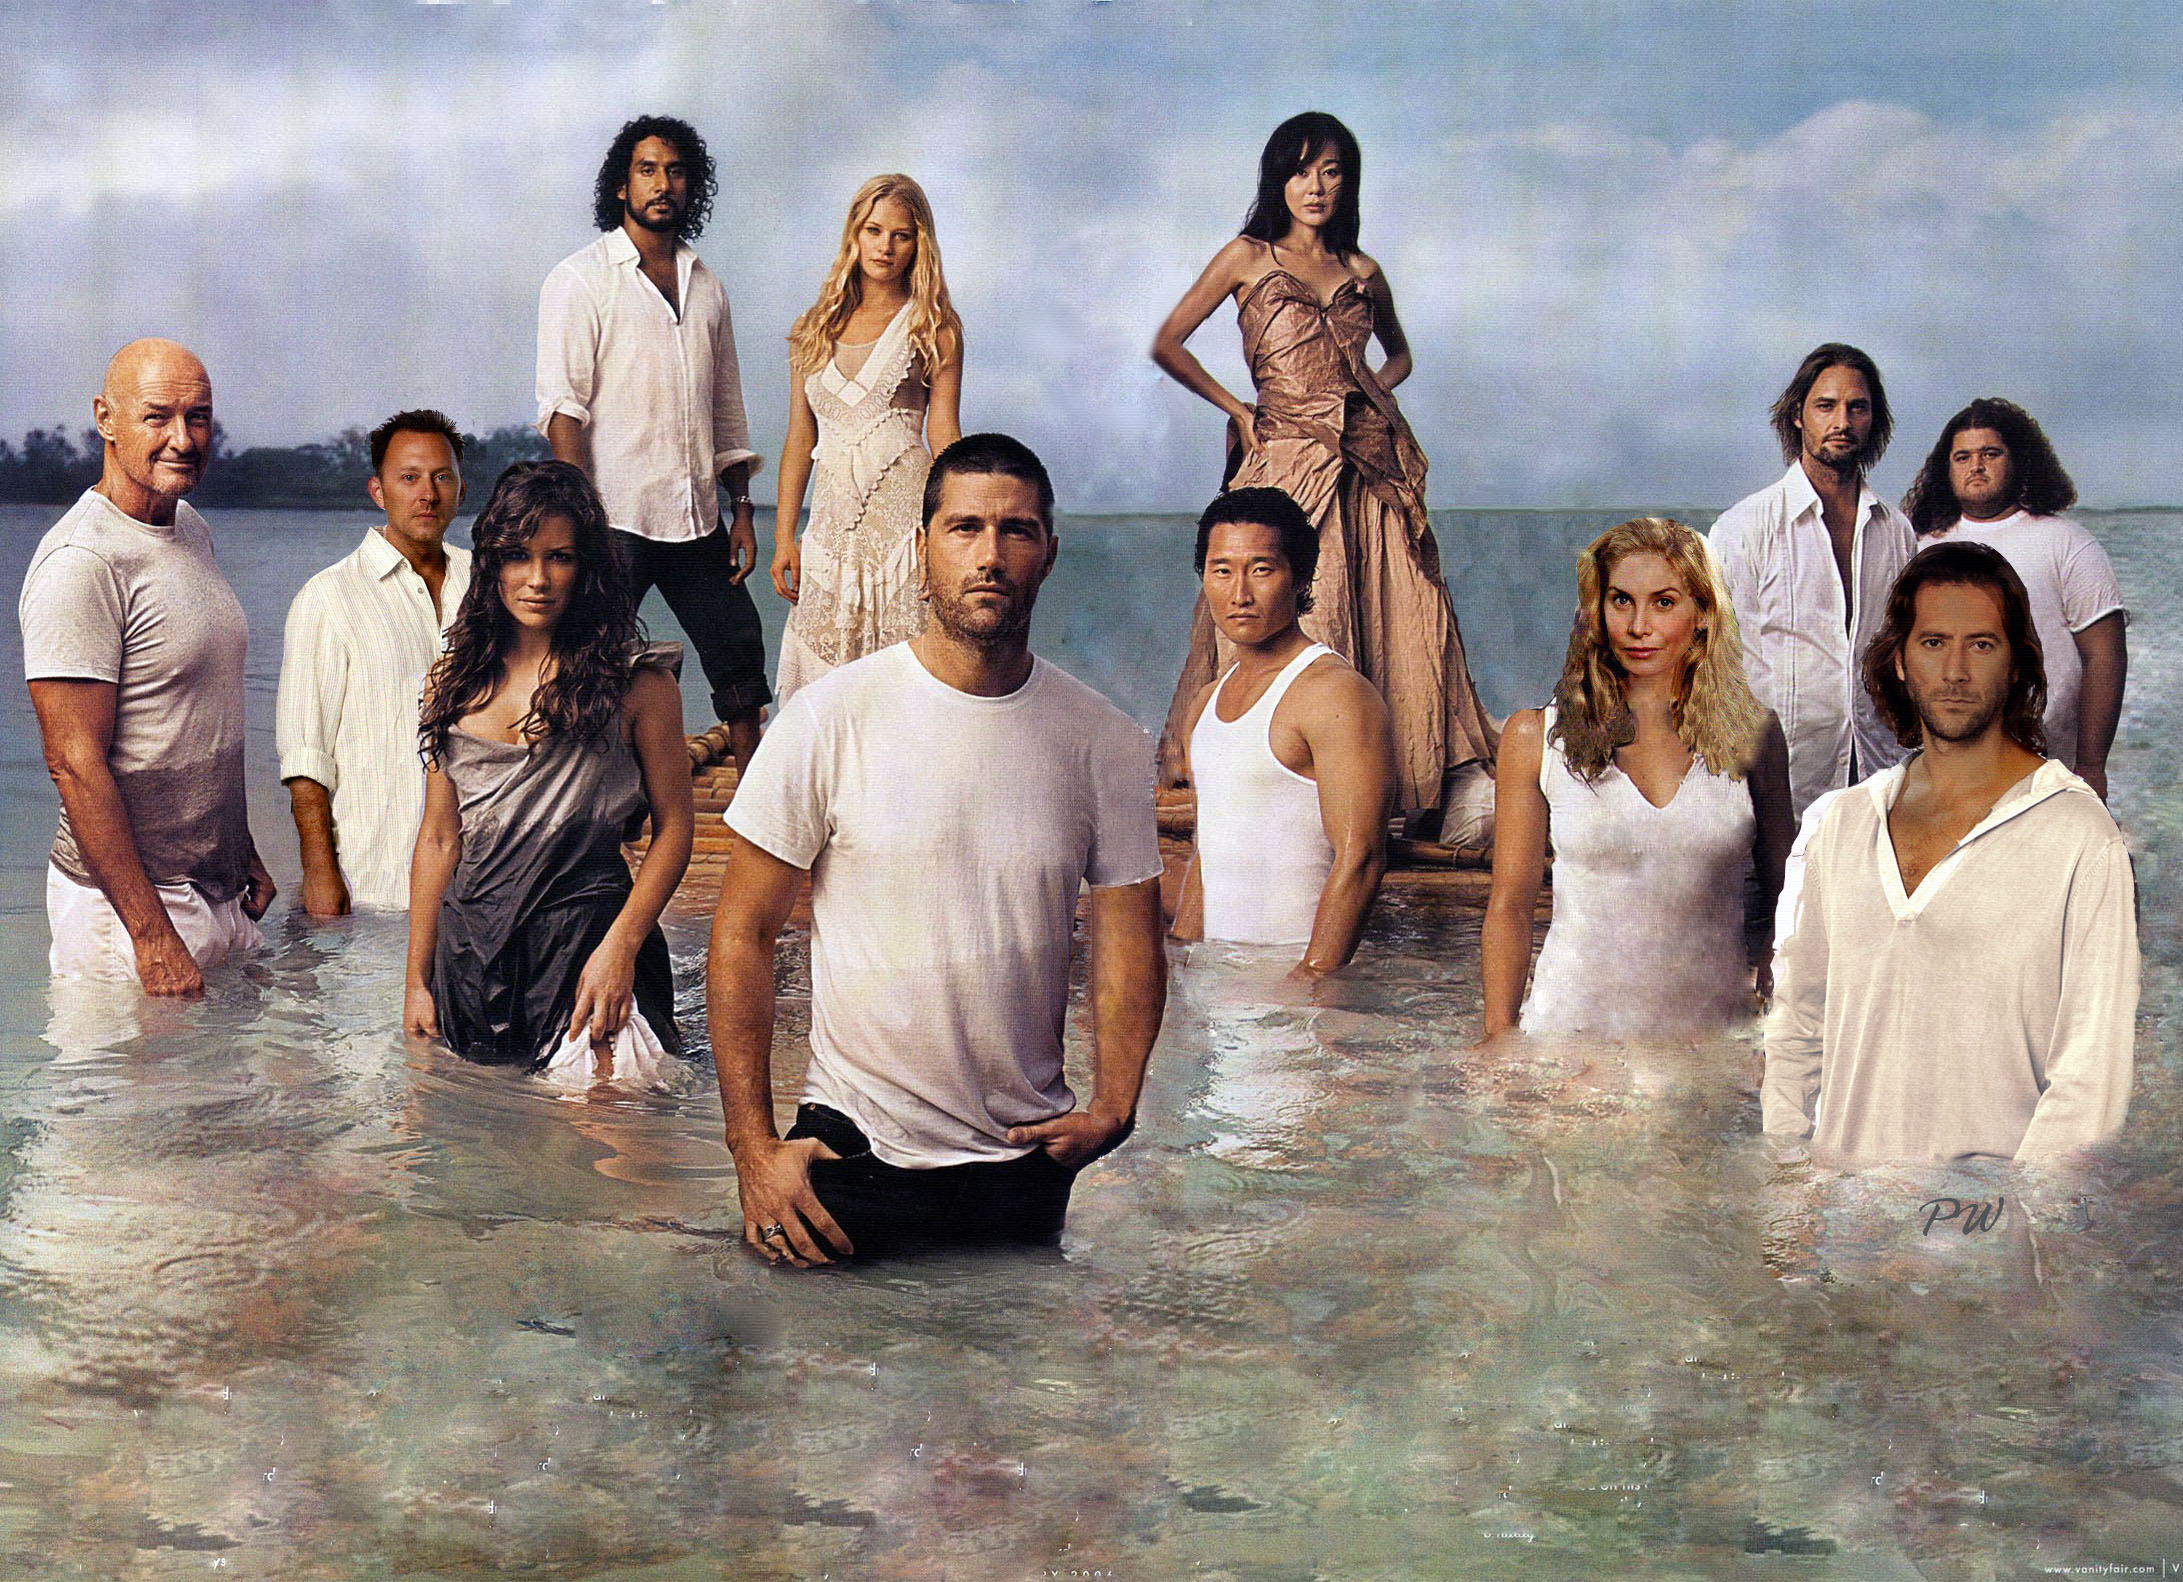 Still Missing 'Lost?' Here's Where to Find 10 of Its Cast Members on ...